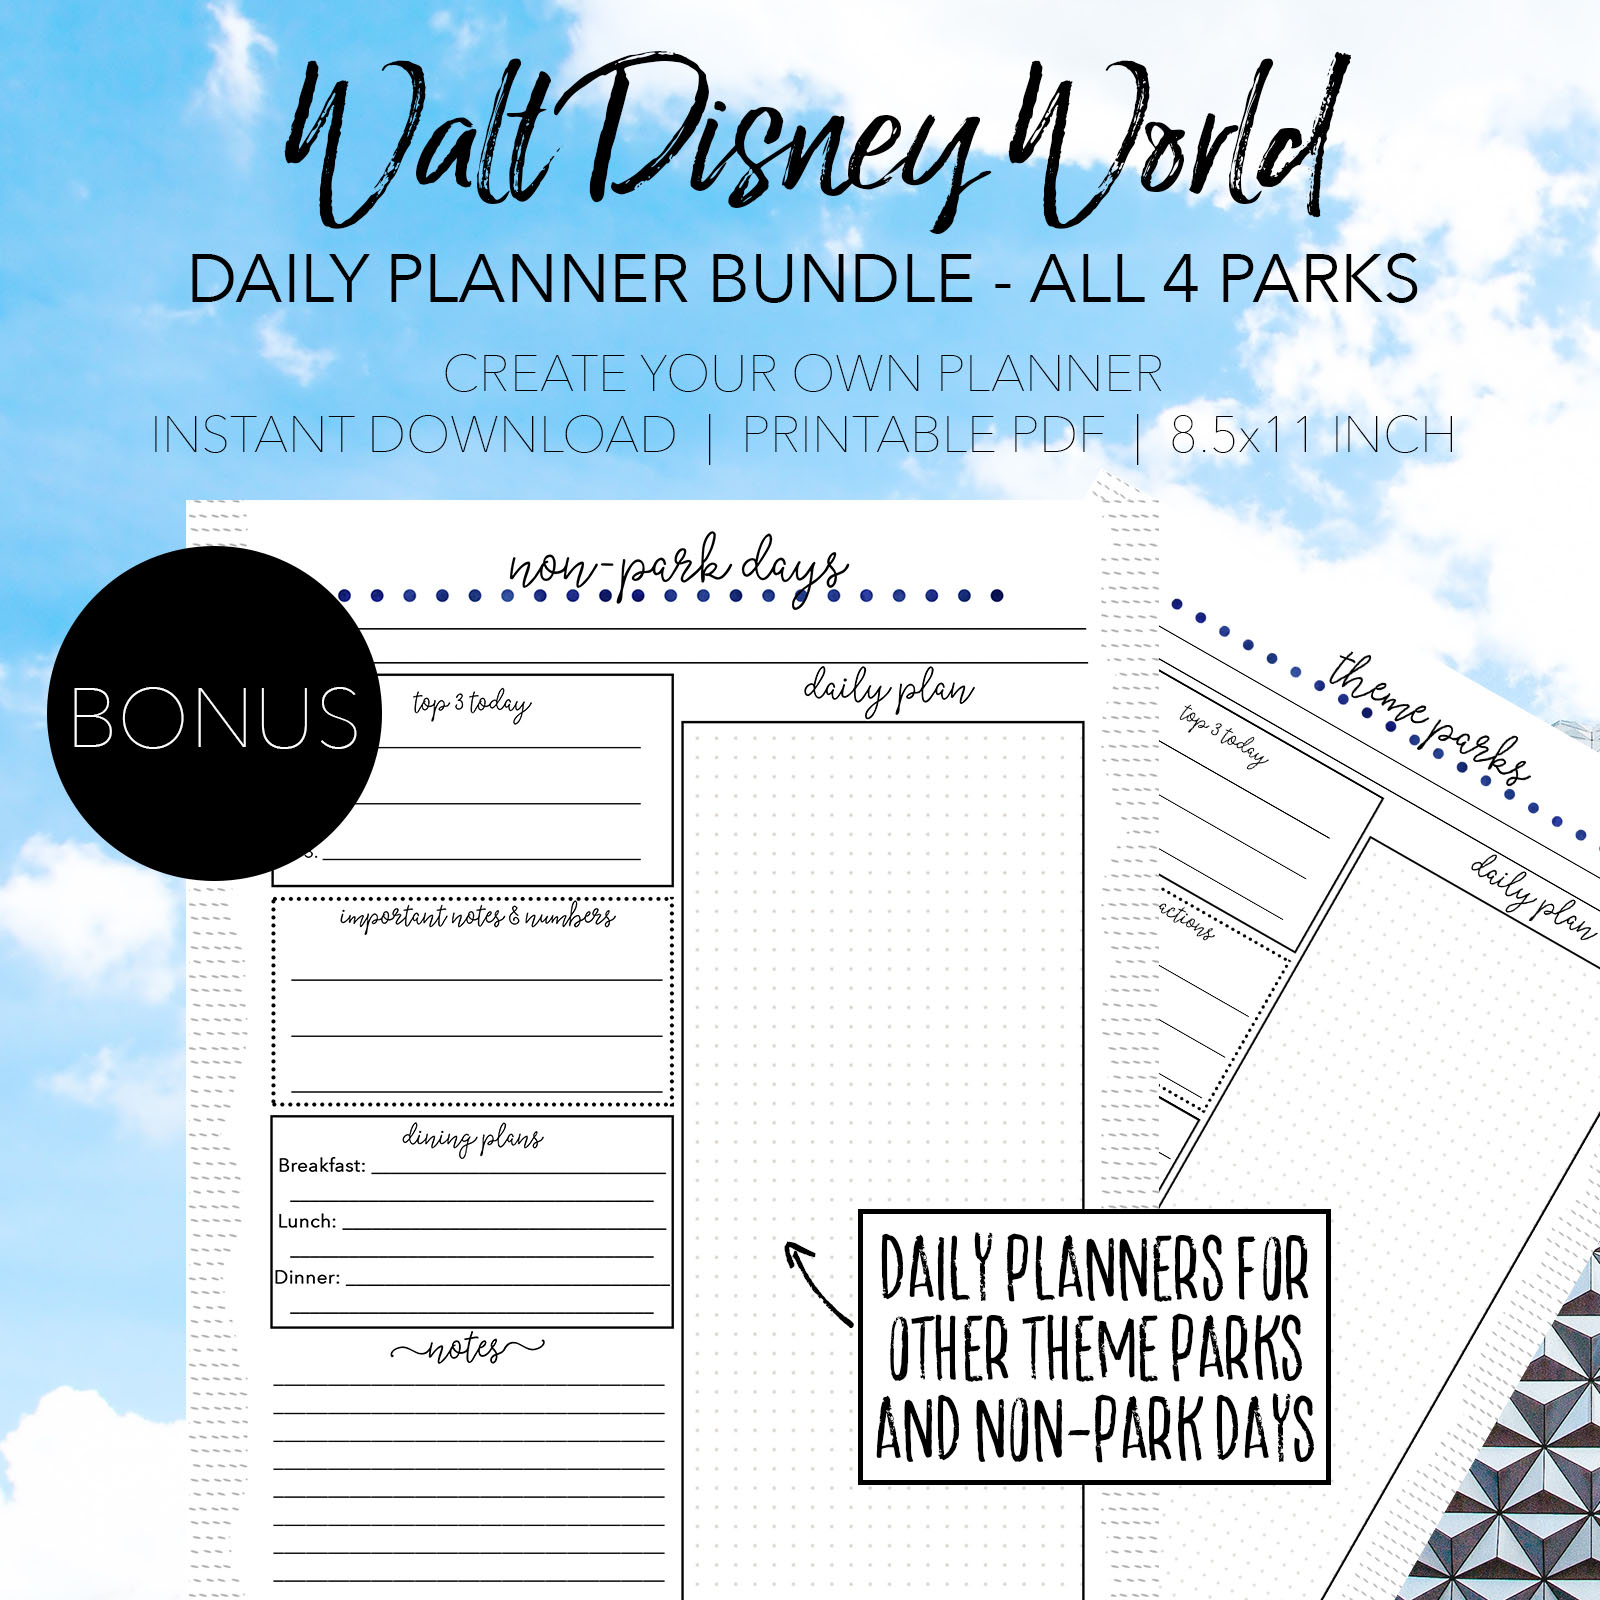 Walt Disney World Dining Planner